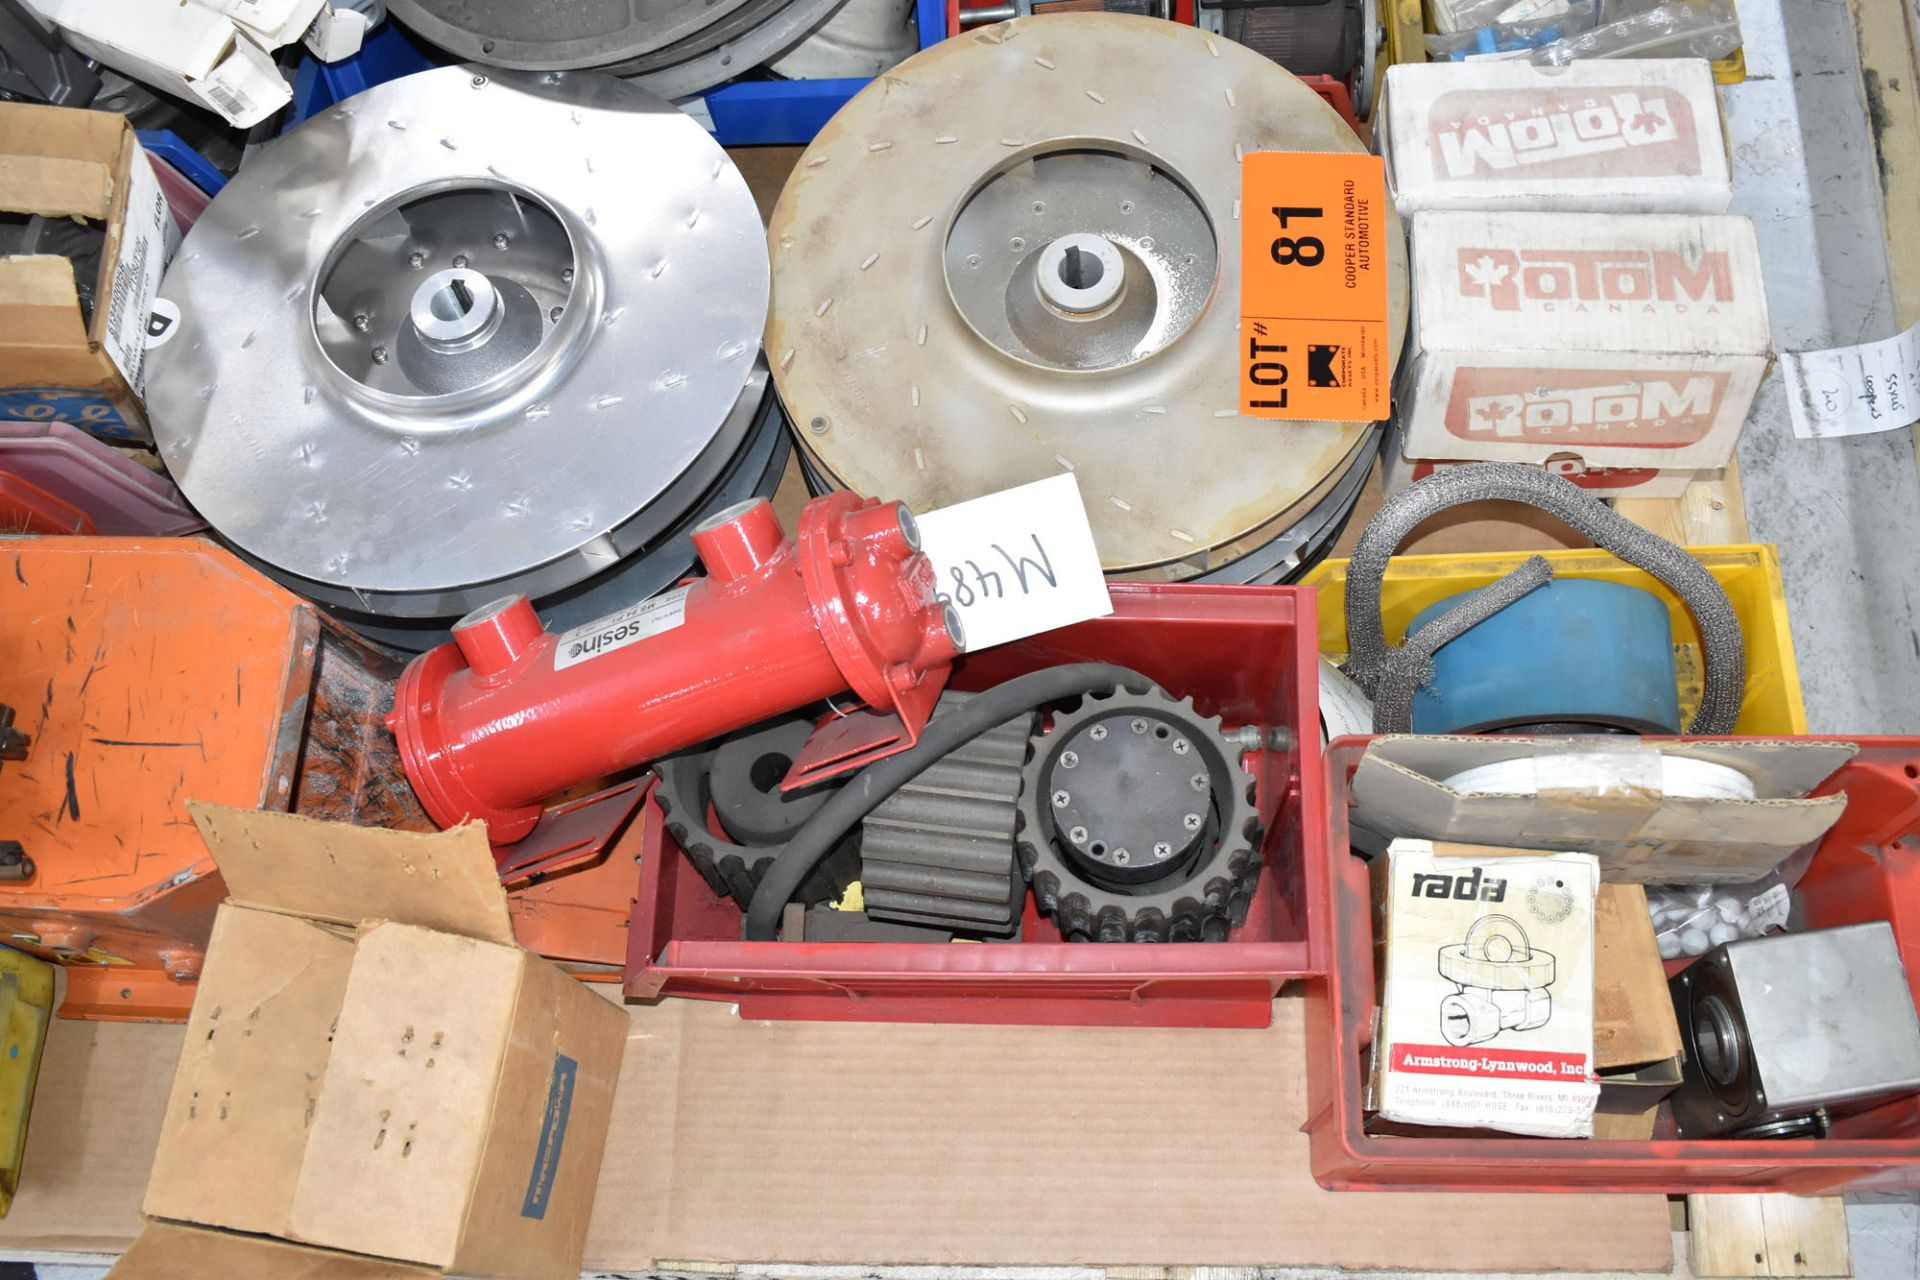 LOT/ PALLET WITH CONTENTS CONSISTING OF REELS, CHAIN, AND EXTRUDER LINE COMPONENTS - Image 3 of 3